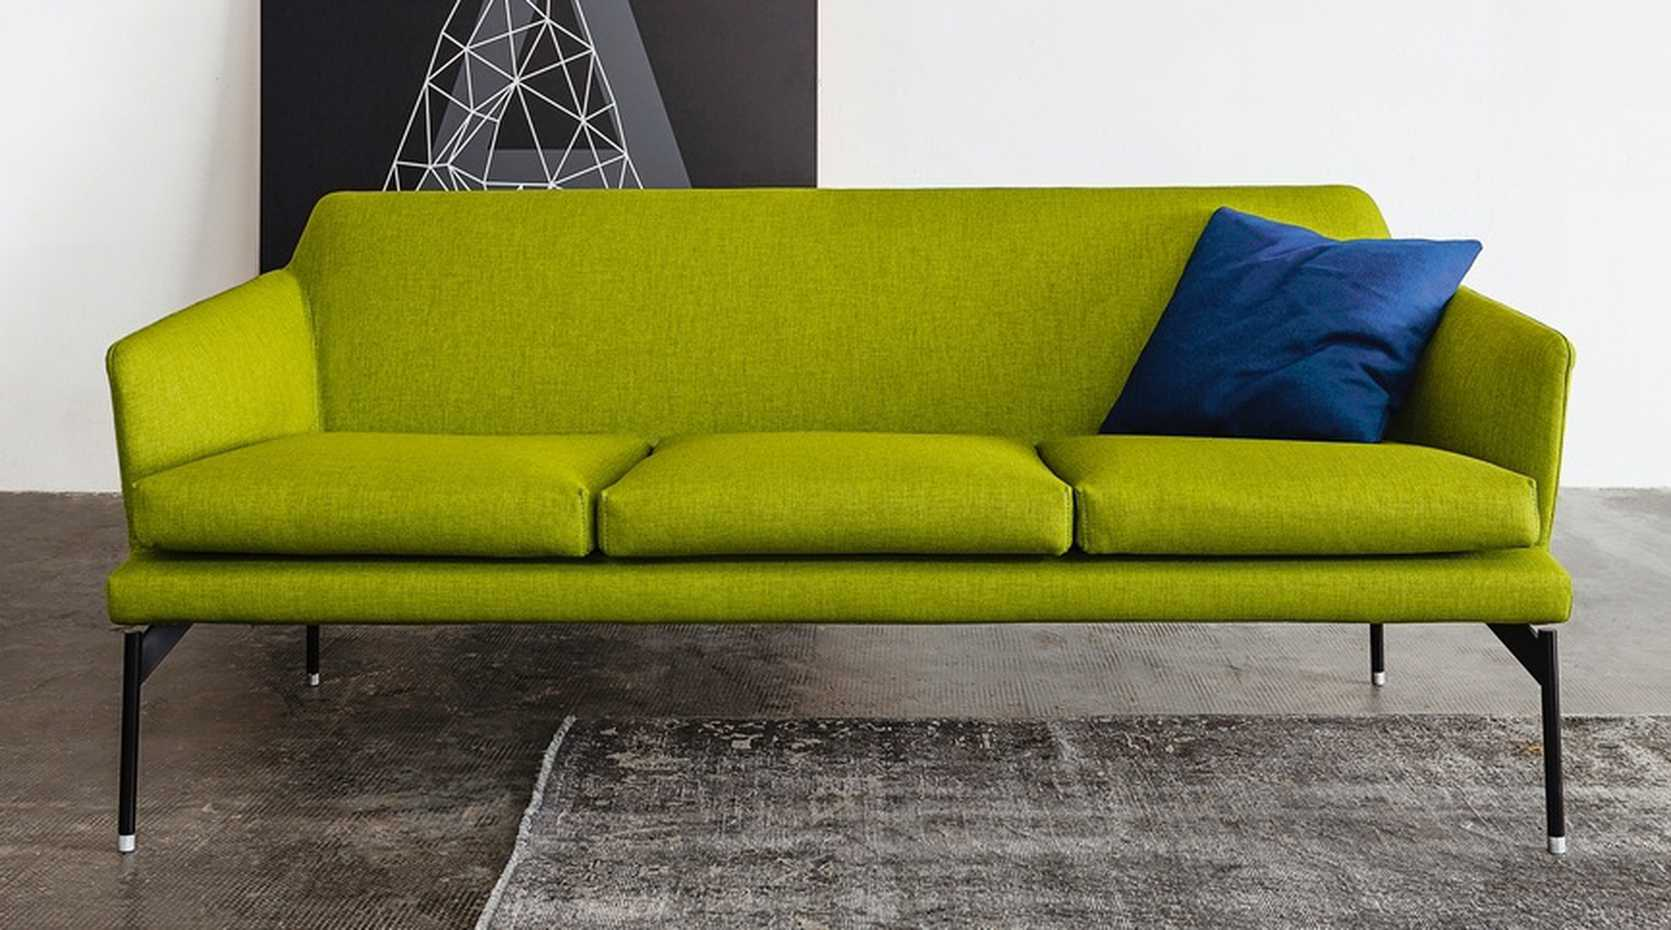 Level by Vibieffe product image 3